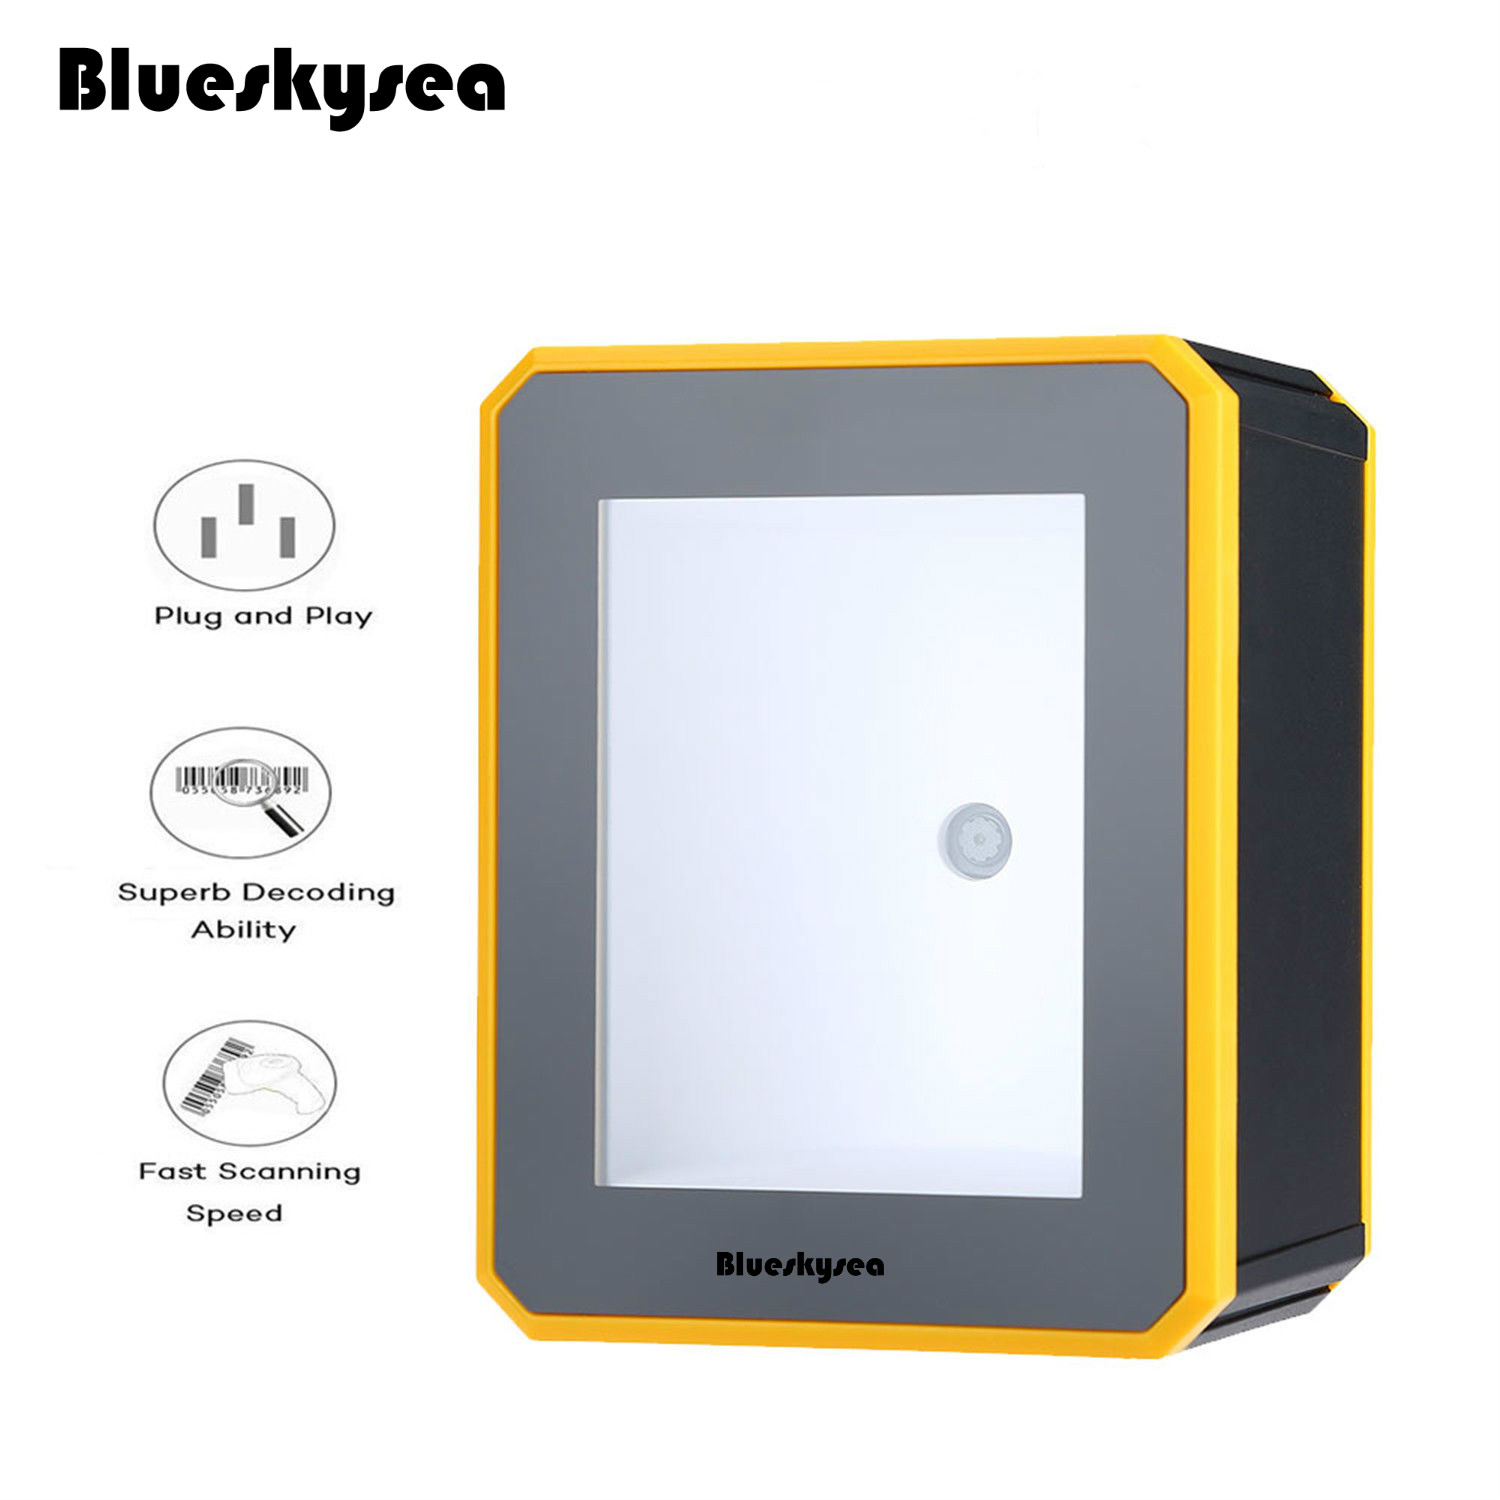 Blueskysea YK-MP2600 1D/2D Platform Barcode Scanner USB Wired Desktop 2D QR Code Reader Omnidirectional 2D QR PDF417 Scanner blueskysea yk wm3l 960x640 cmos 433mhz wireless bar code scaner 1d 2d qr code pdf417 scanner barcode wireless qr reader